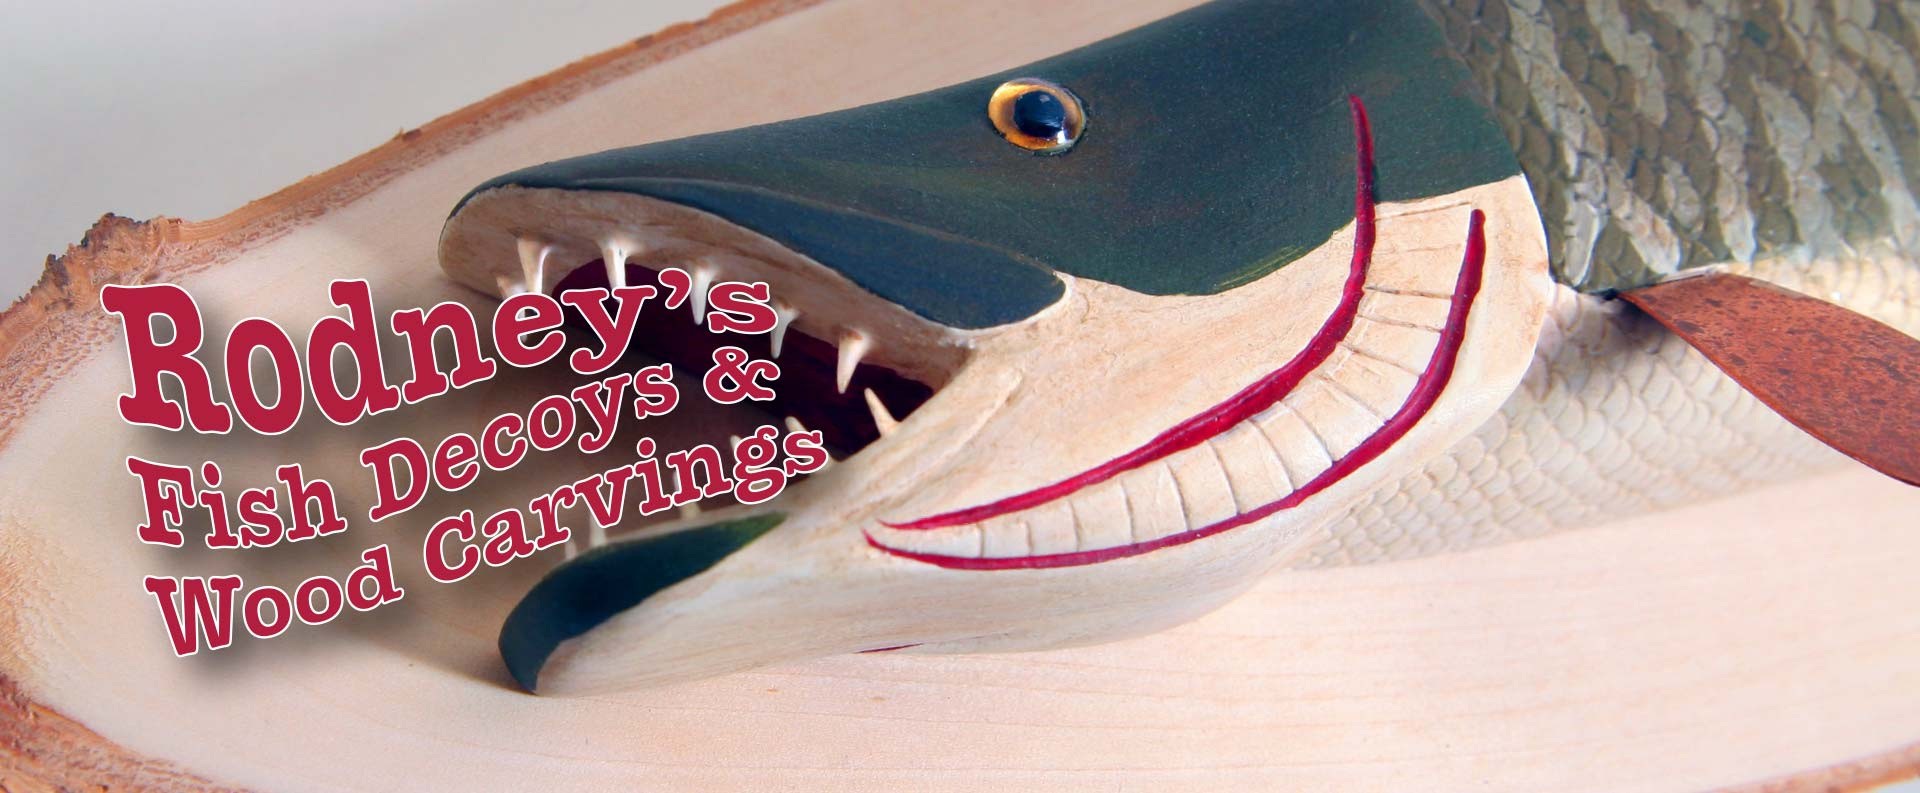 Rodney's Fish Decoys and Wood Carvings Fish Decoy Folk Art